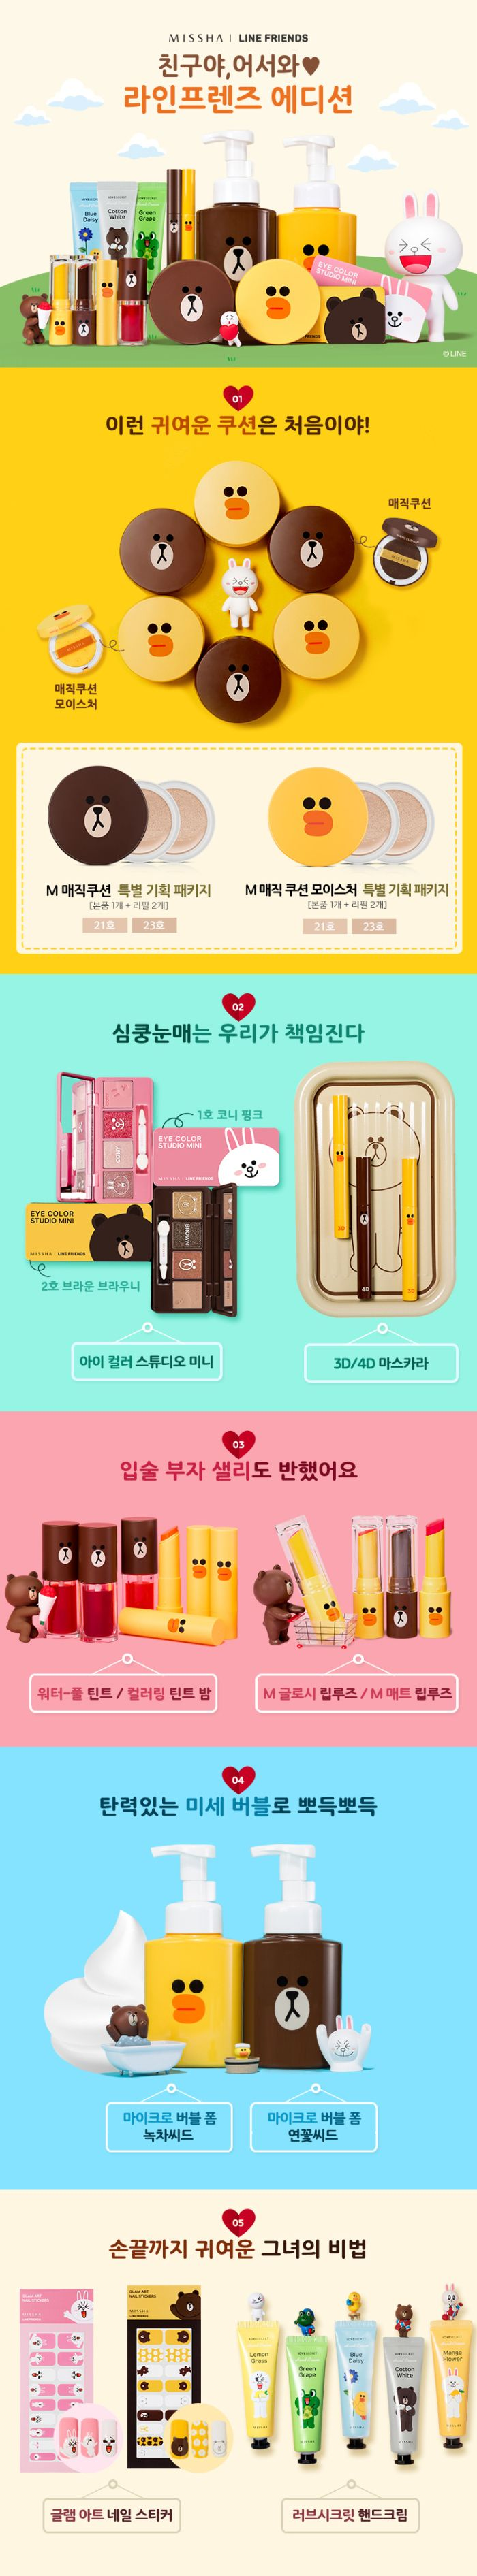 Missha x Line Friends (Collage). I want all